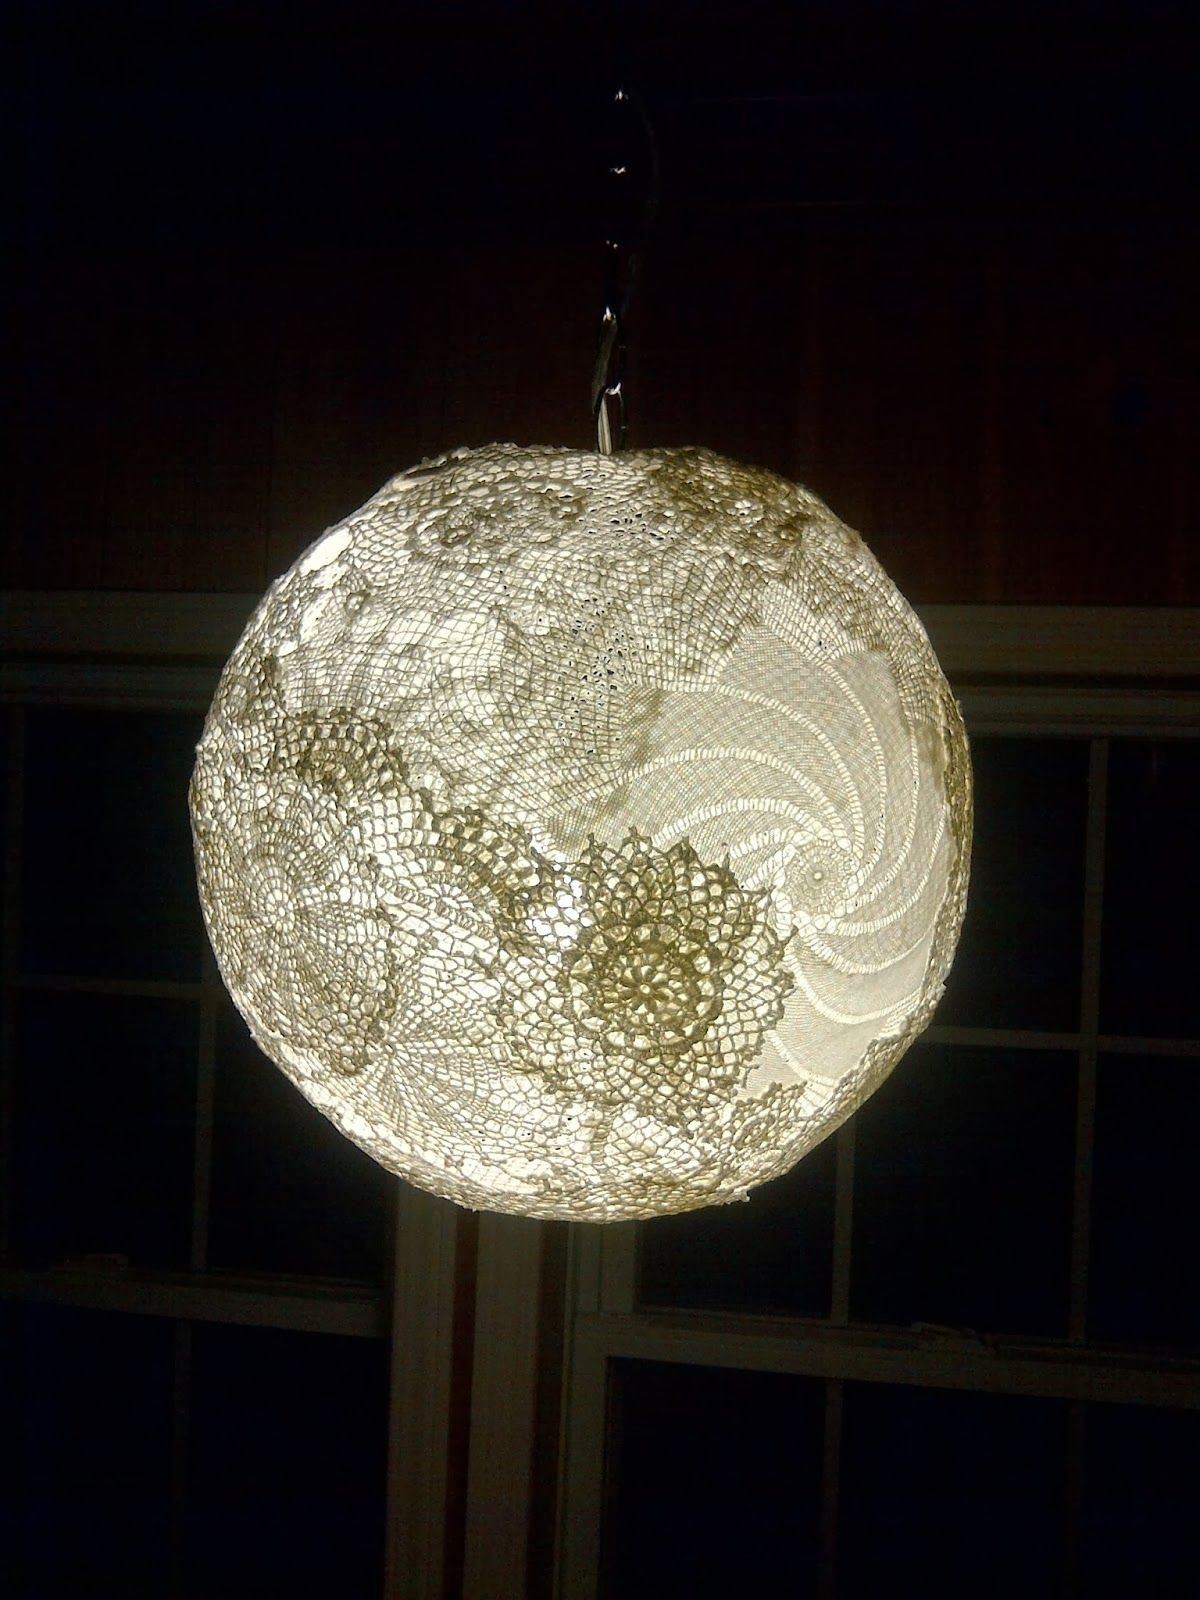 Brick home love diy hanging doily lamp crafts pinterest brick home love diy hanging doily lamp arubaitofo Image collections